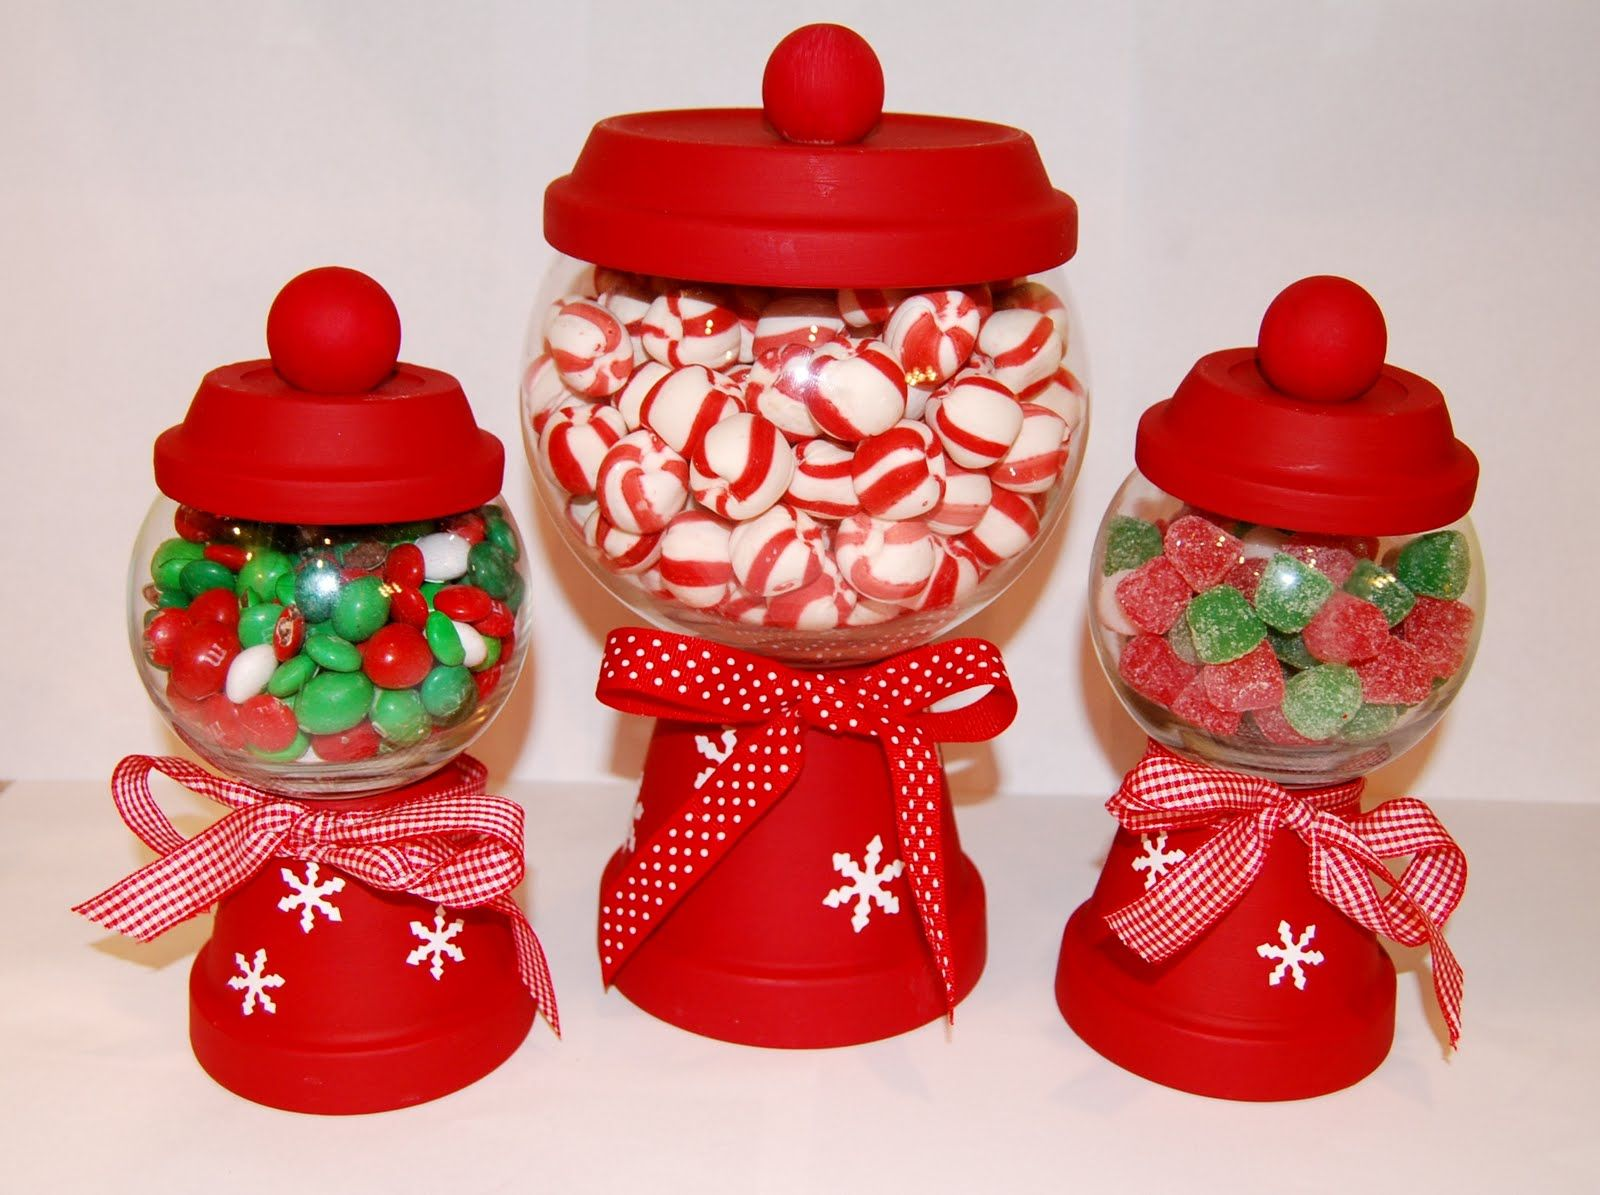 Craft containers with lids - Find This Pin And More On Christmas Craft Ideas